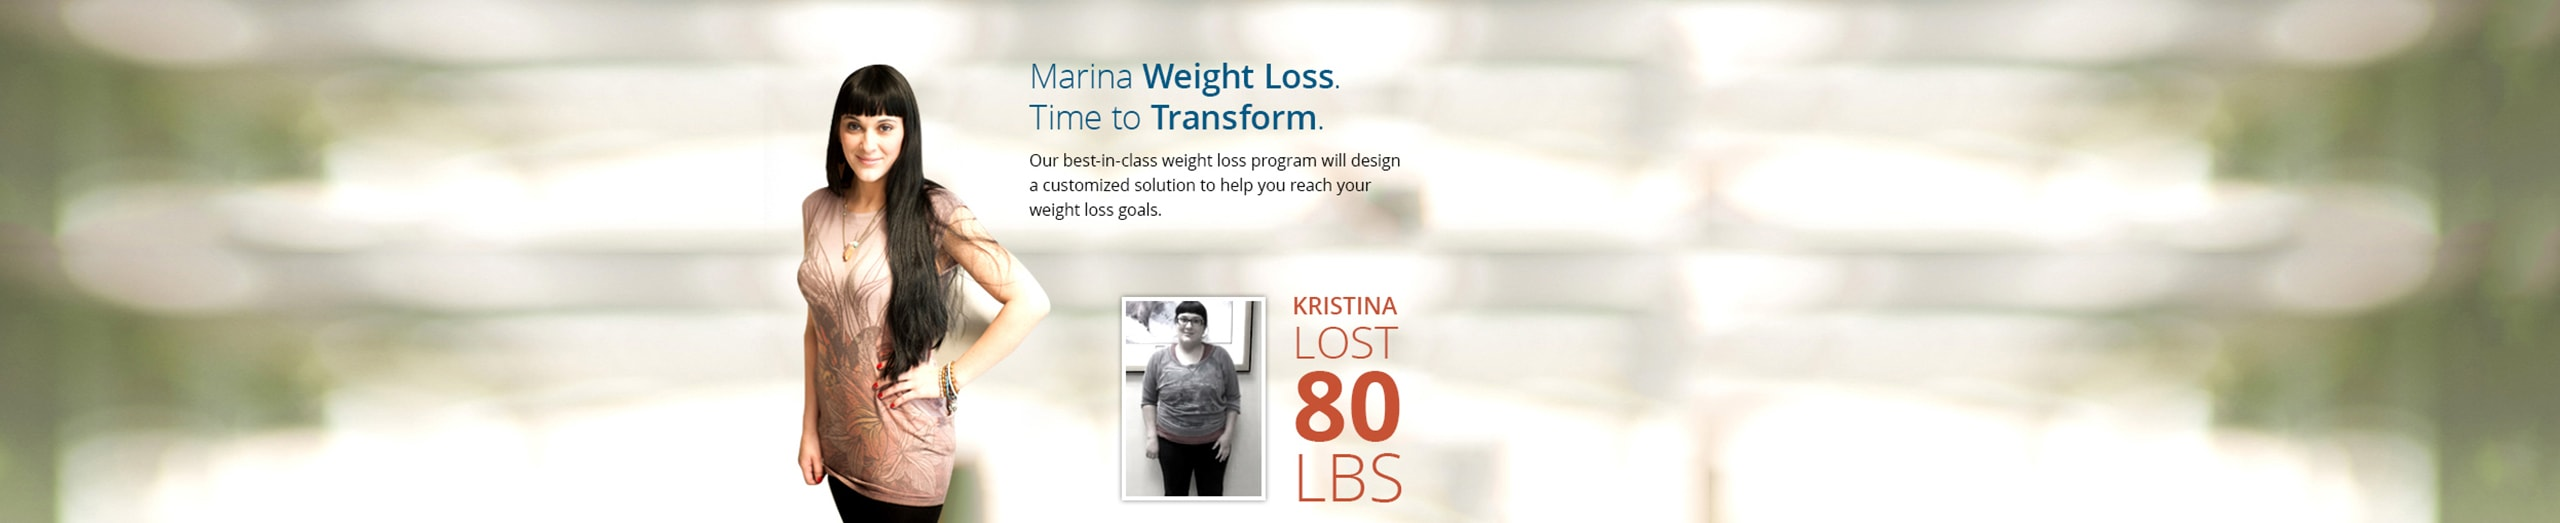 does everyone hit weight loss plateau